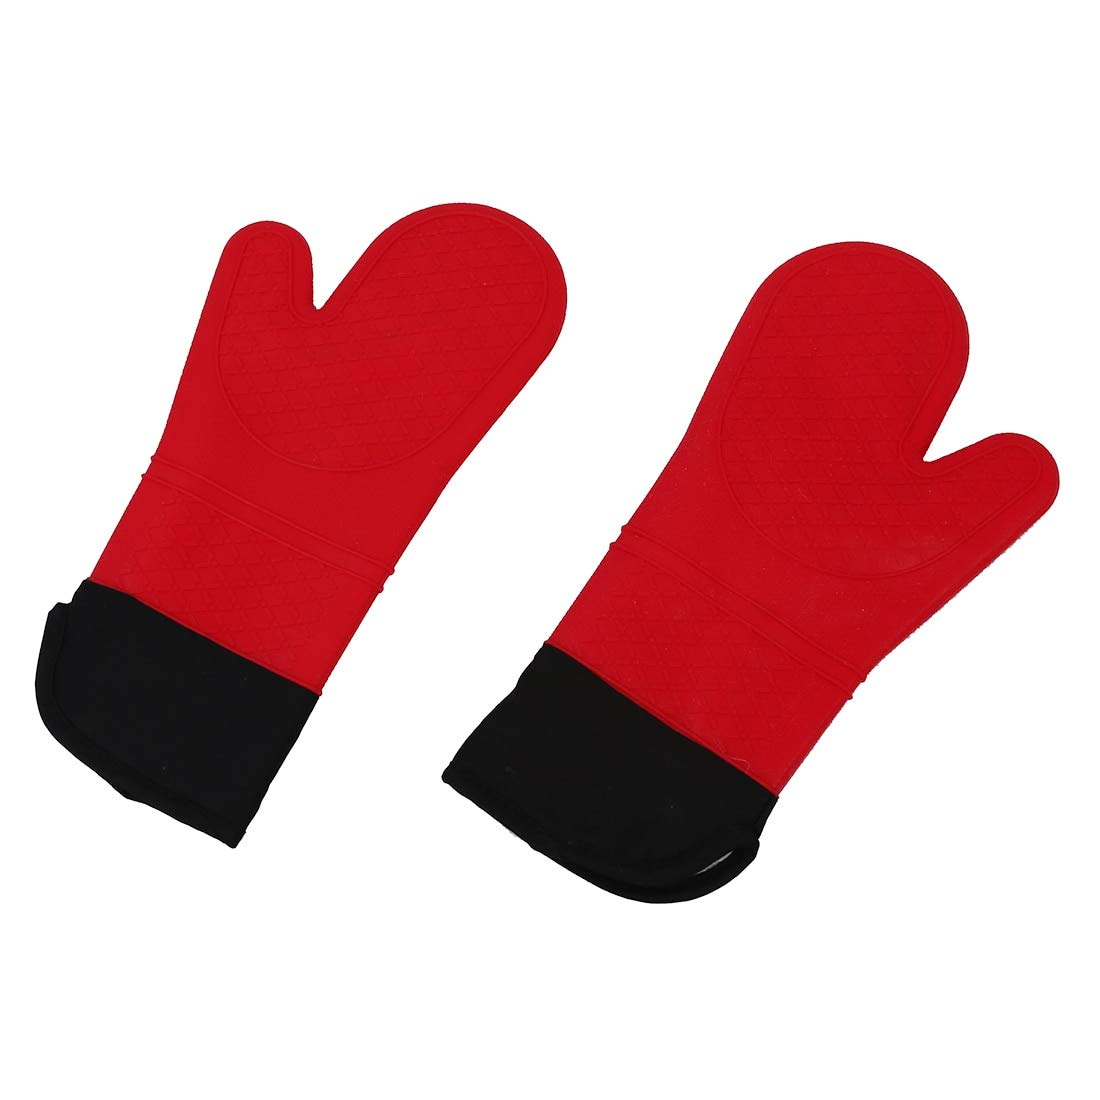 Oven Mitts Oven Sleeves - 2pcs Red Silicone Oven Mitt Glove Potholder With Extra Long Canvas Sleeve Stitching Bbq Barbecue - Pastry Microwave Mitt Sushi Women Women Oven Apron Oven Shoe W